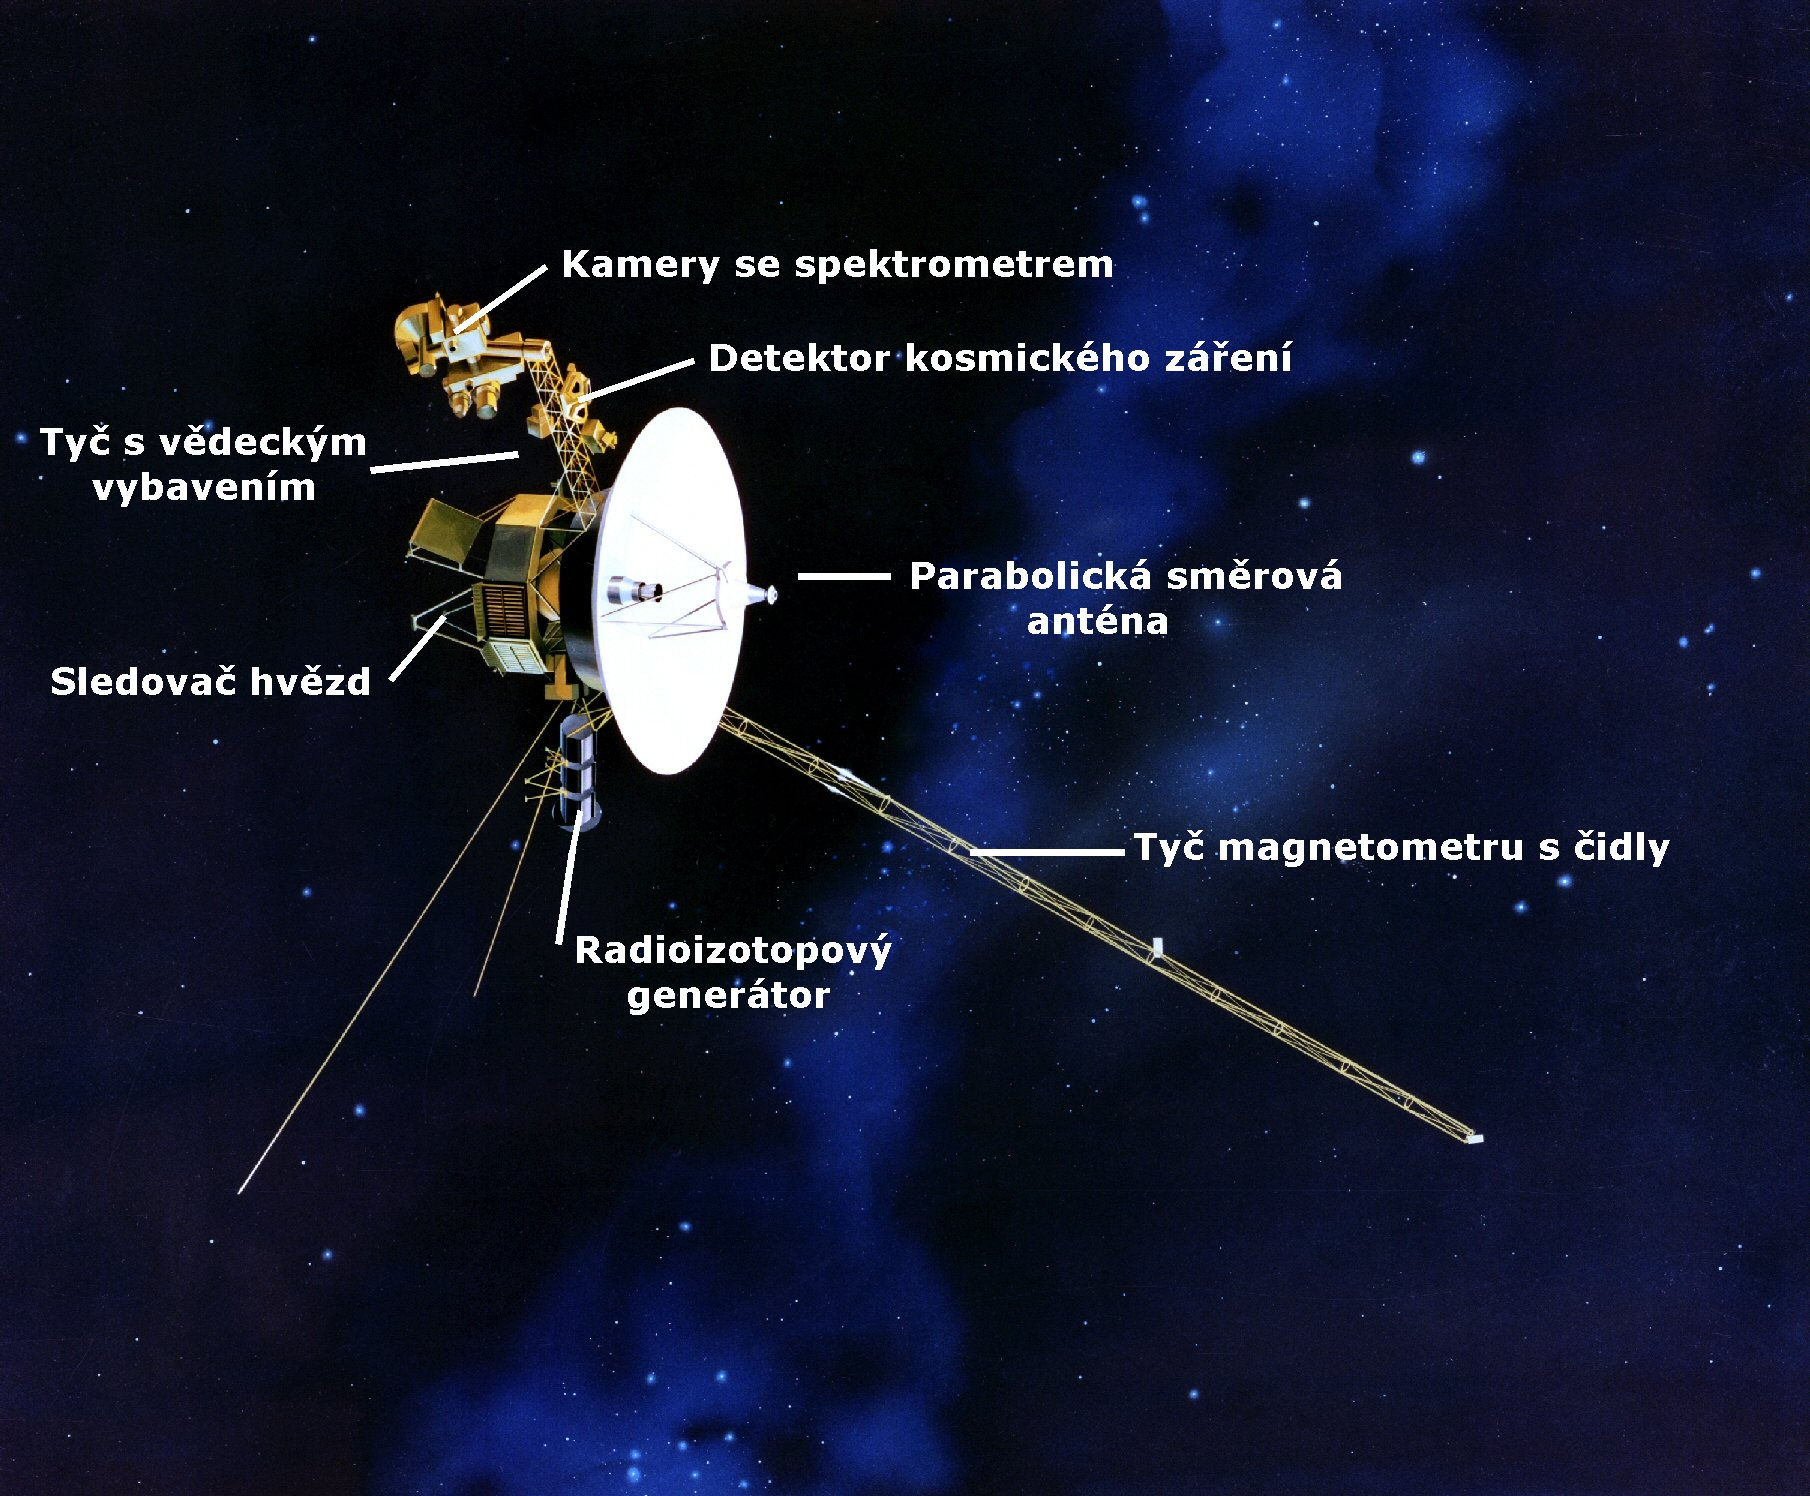 voyager space mission - photo #17